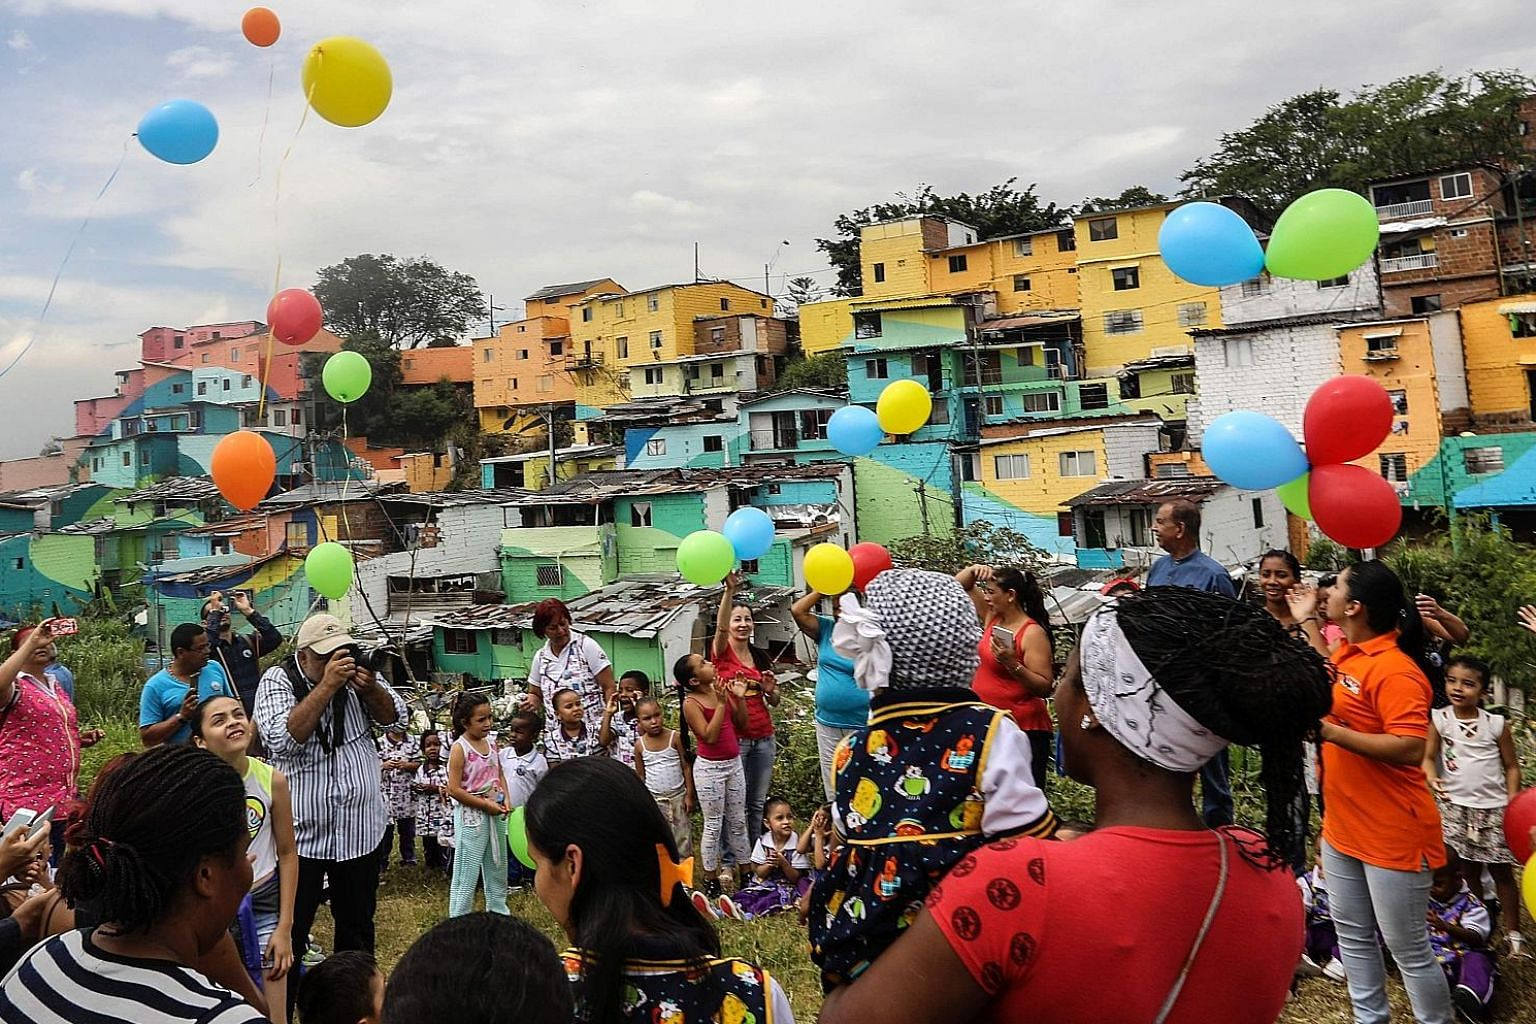 Residents of El Pesebre, a shanty town on the outskirts of Medellin in Colombia, celebrating French street artist Tarik Bouanani's art project on Wednesday. With the help of residents, Bouanani turned the 230 brick houses in the town into a giant mur